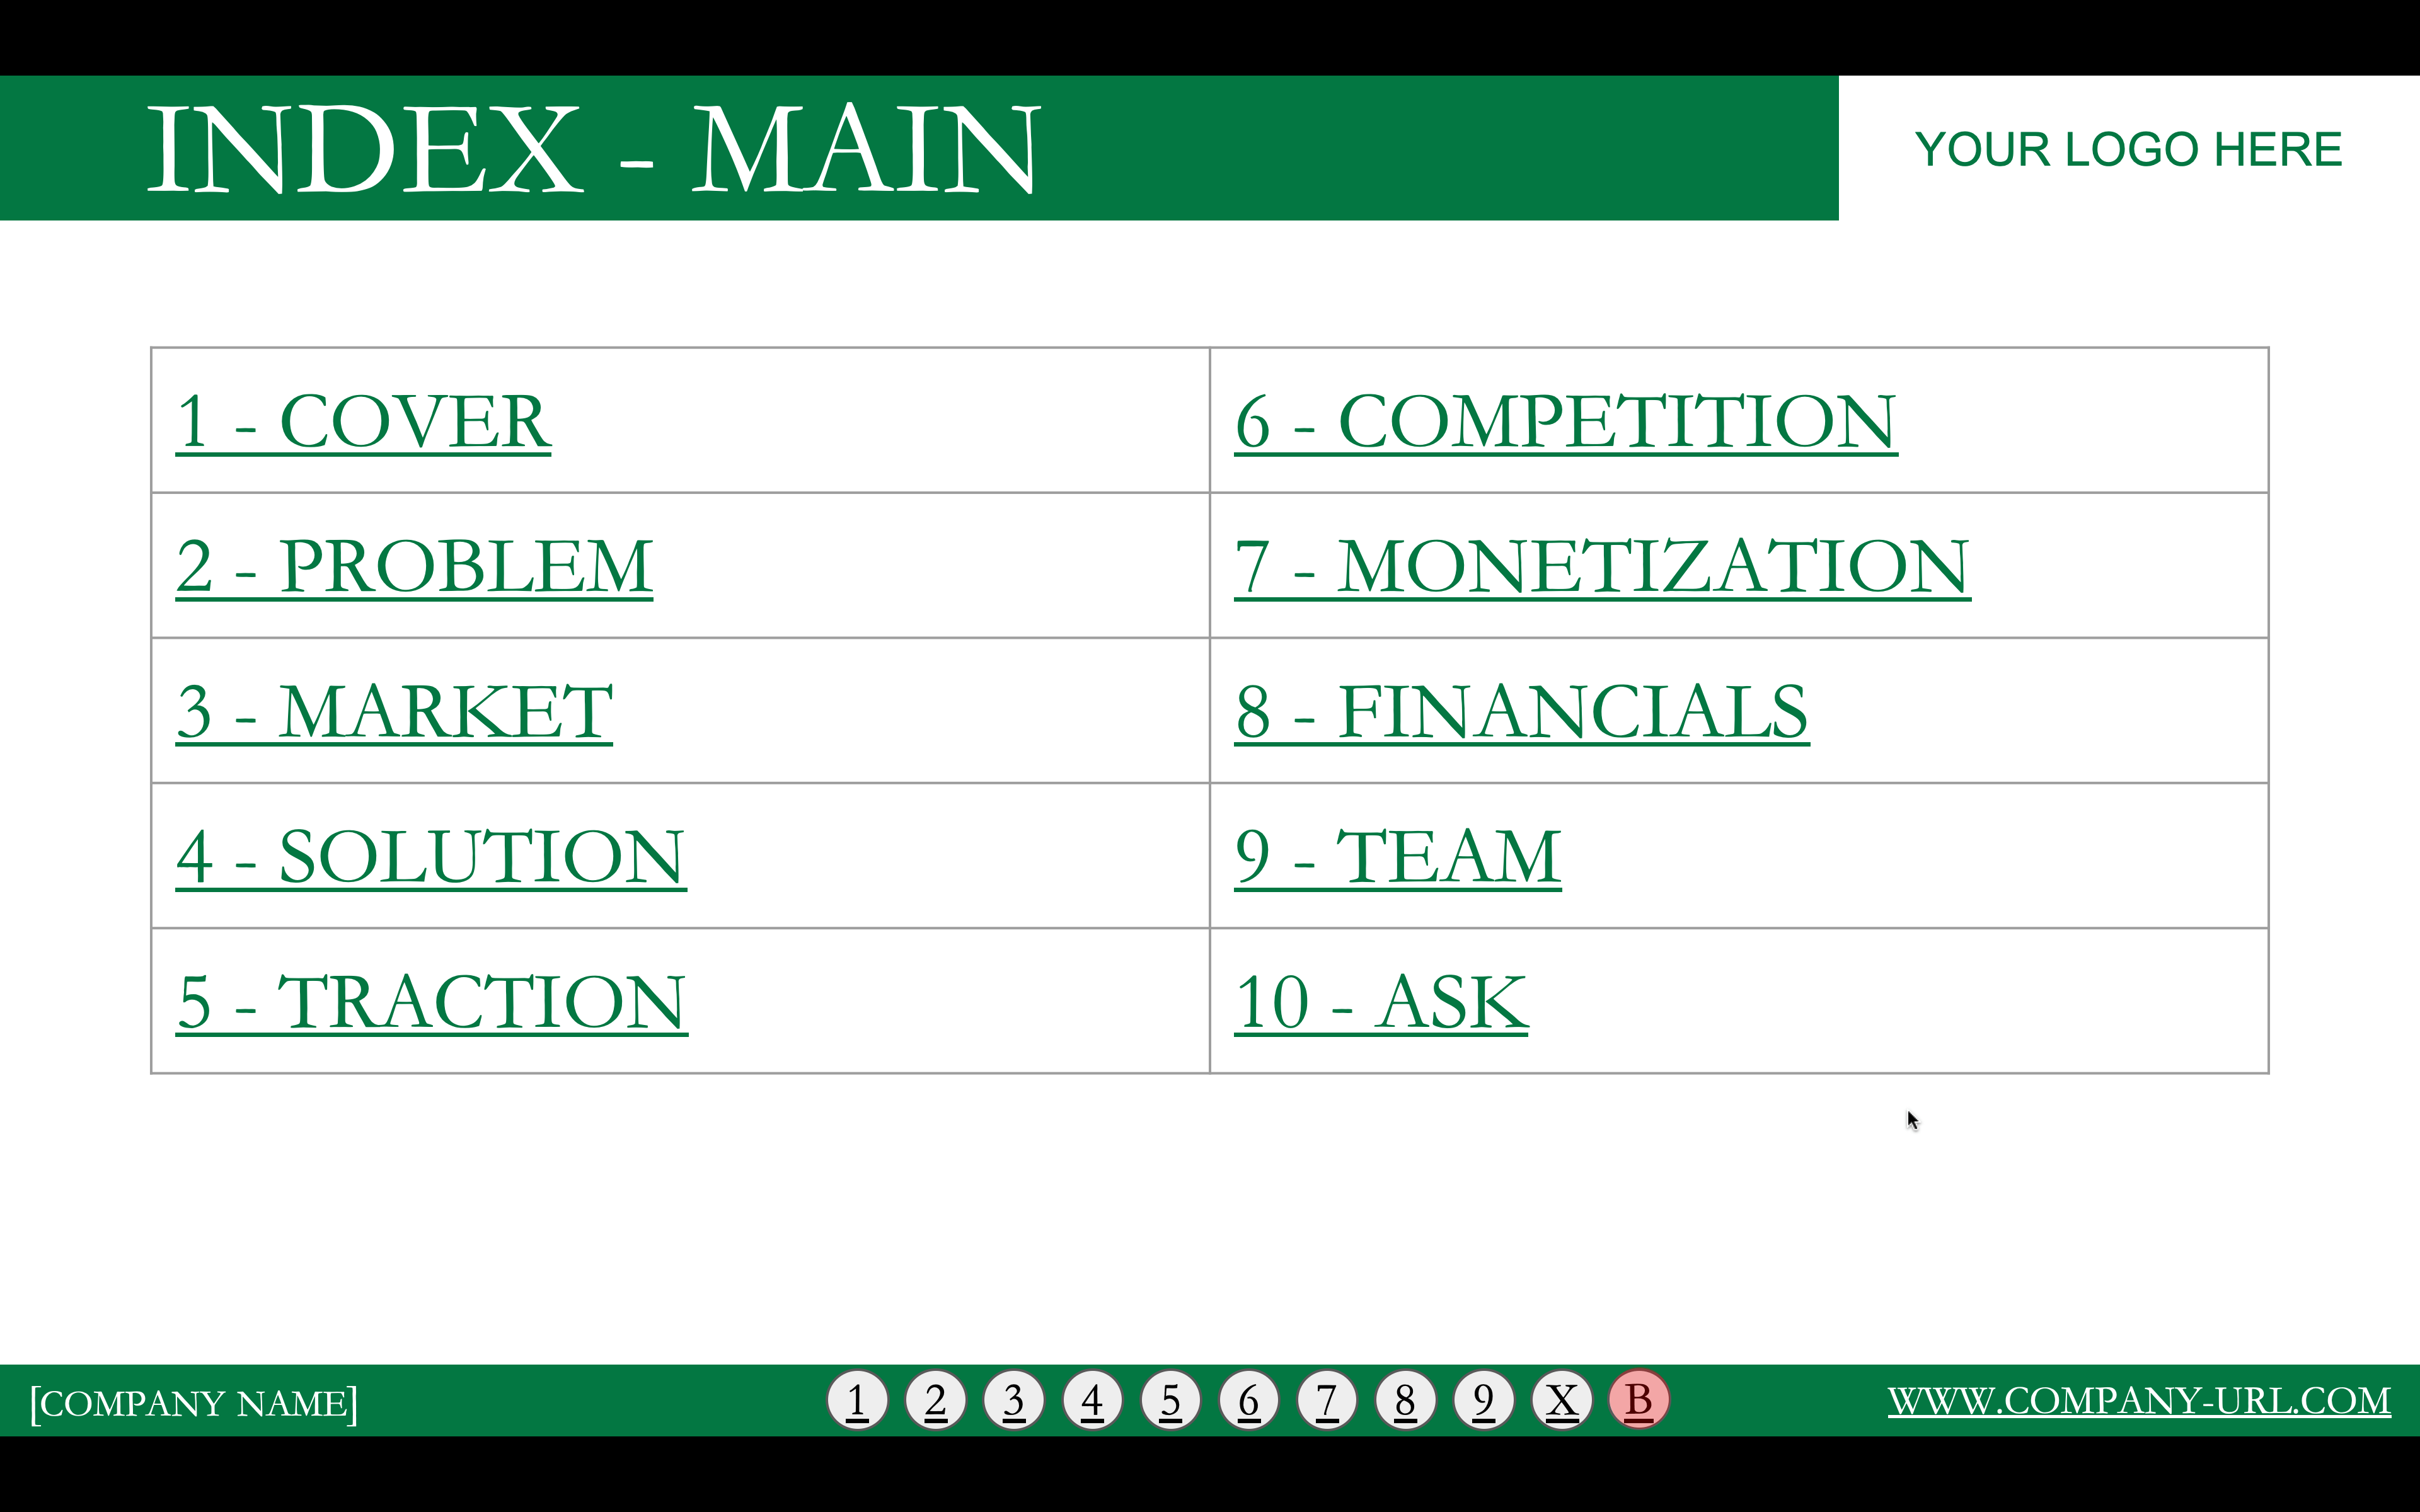 This image is a screenshop of slide 11 of the investor pitch deck showing 10 hyperlinks to the 10 backup sections that are included in Power Pack #3